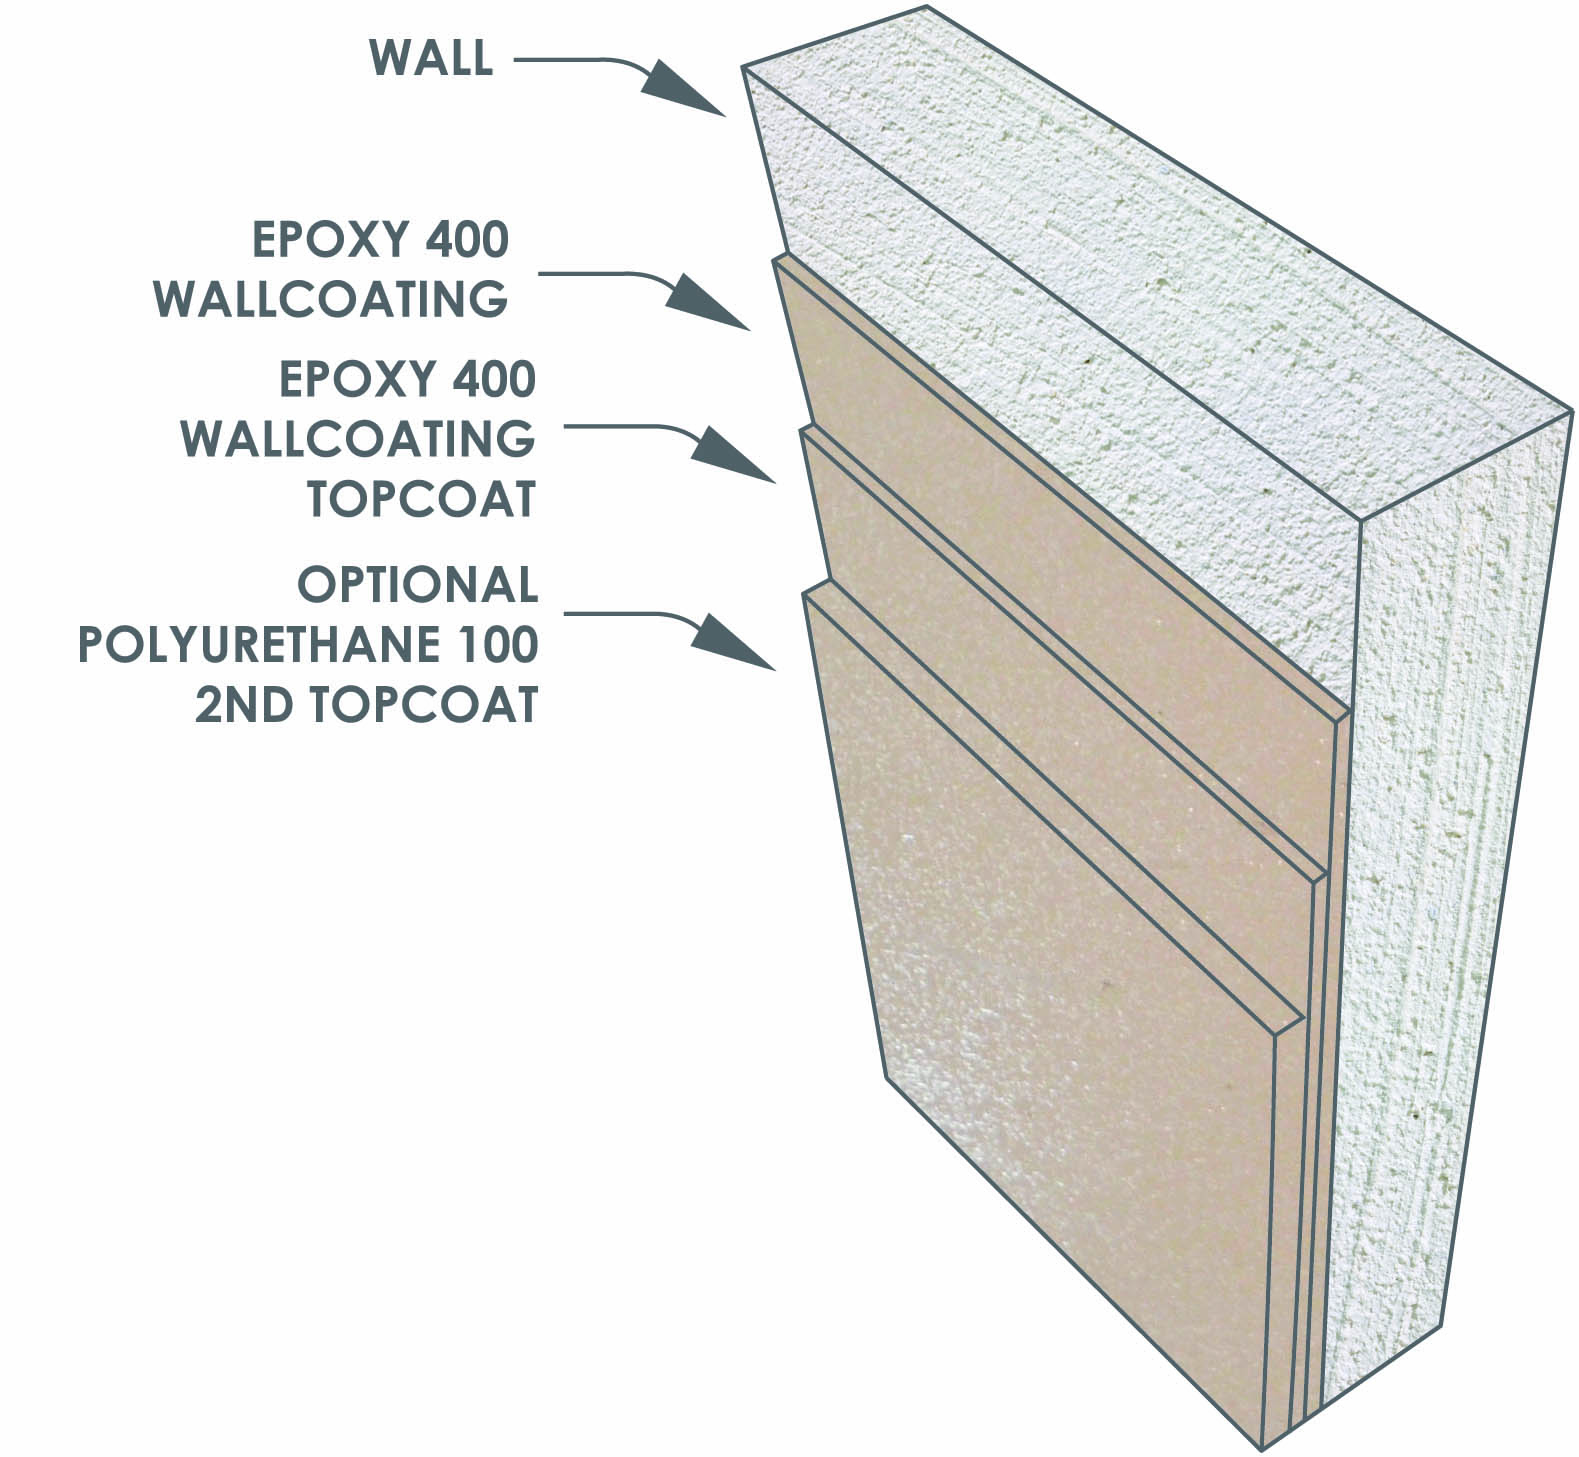 Sani-Wall Wall Coating